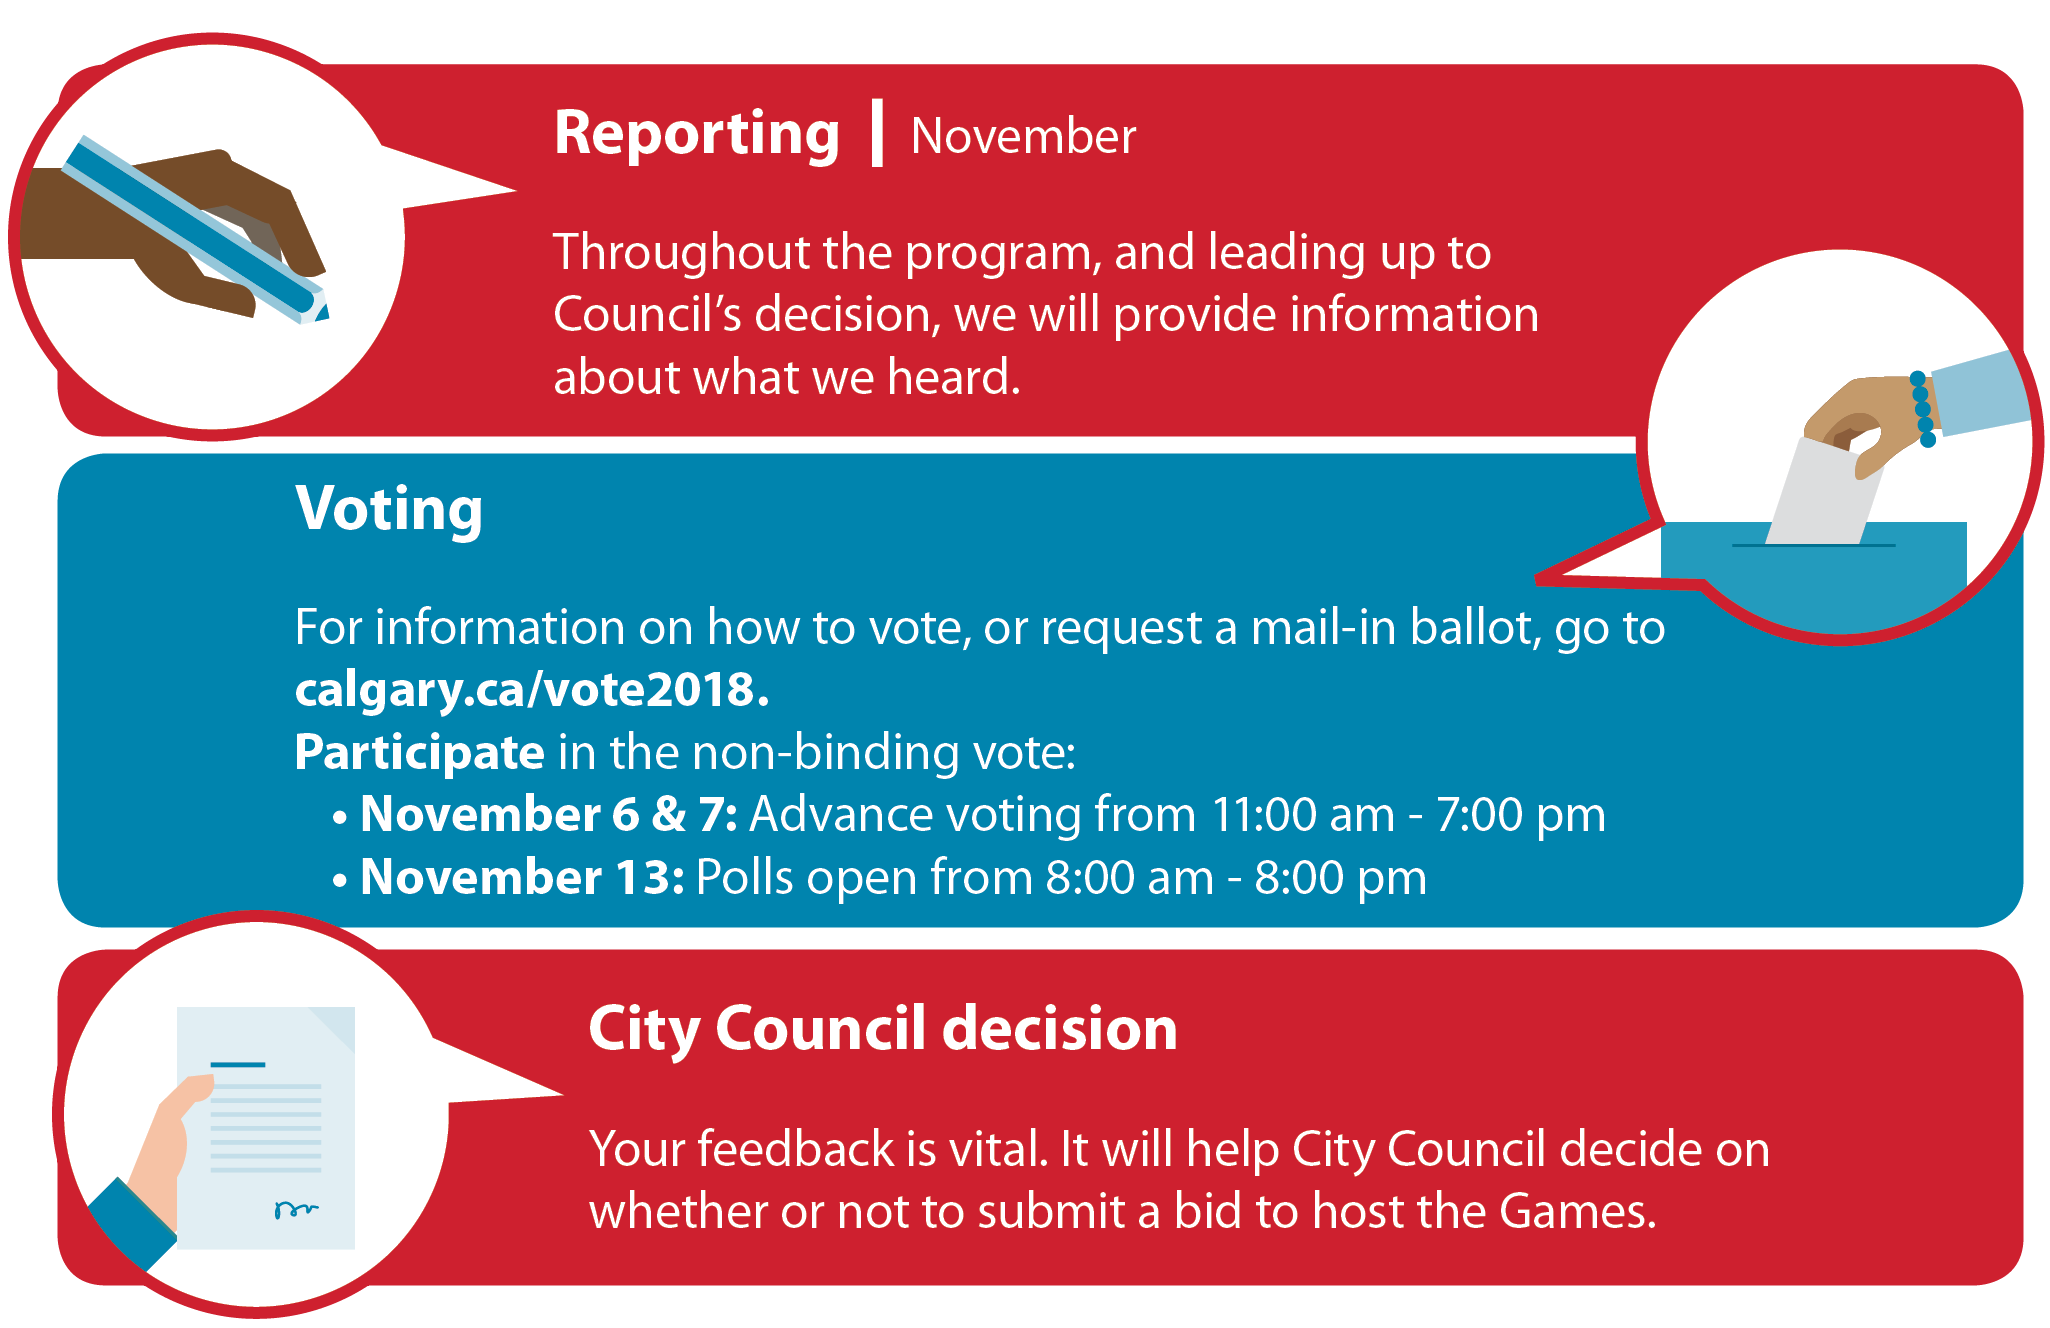 Reporting, Voting, City Council decision